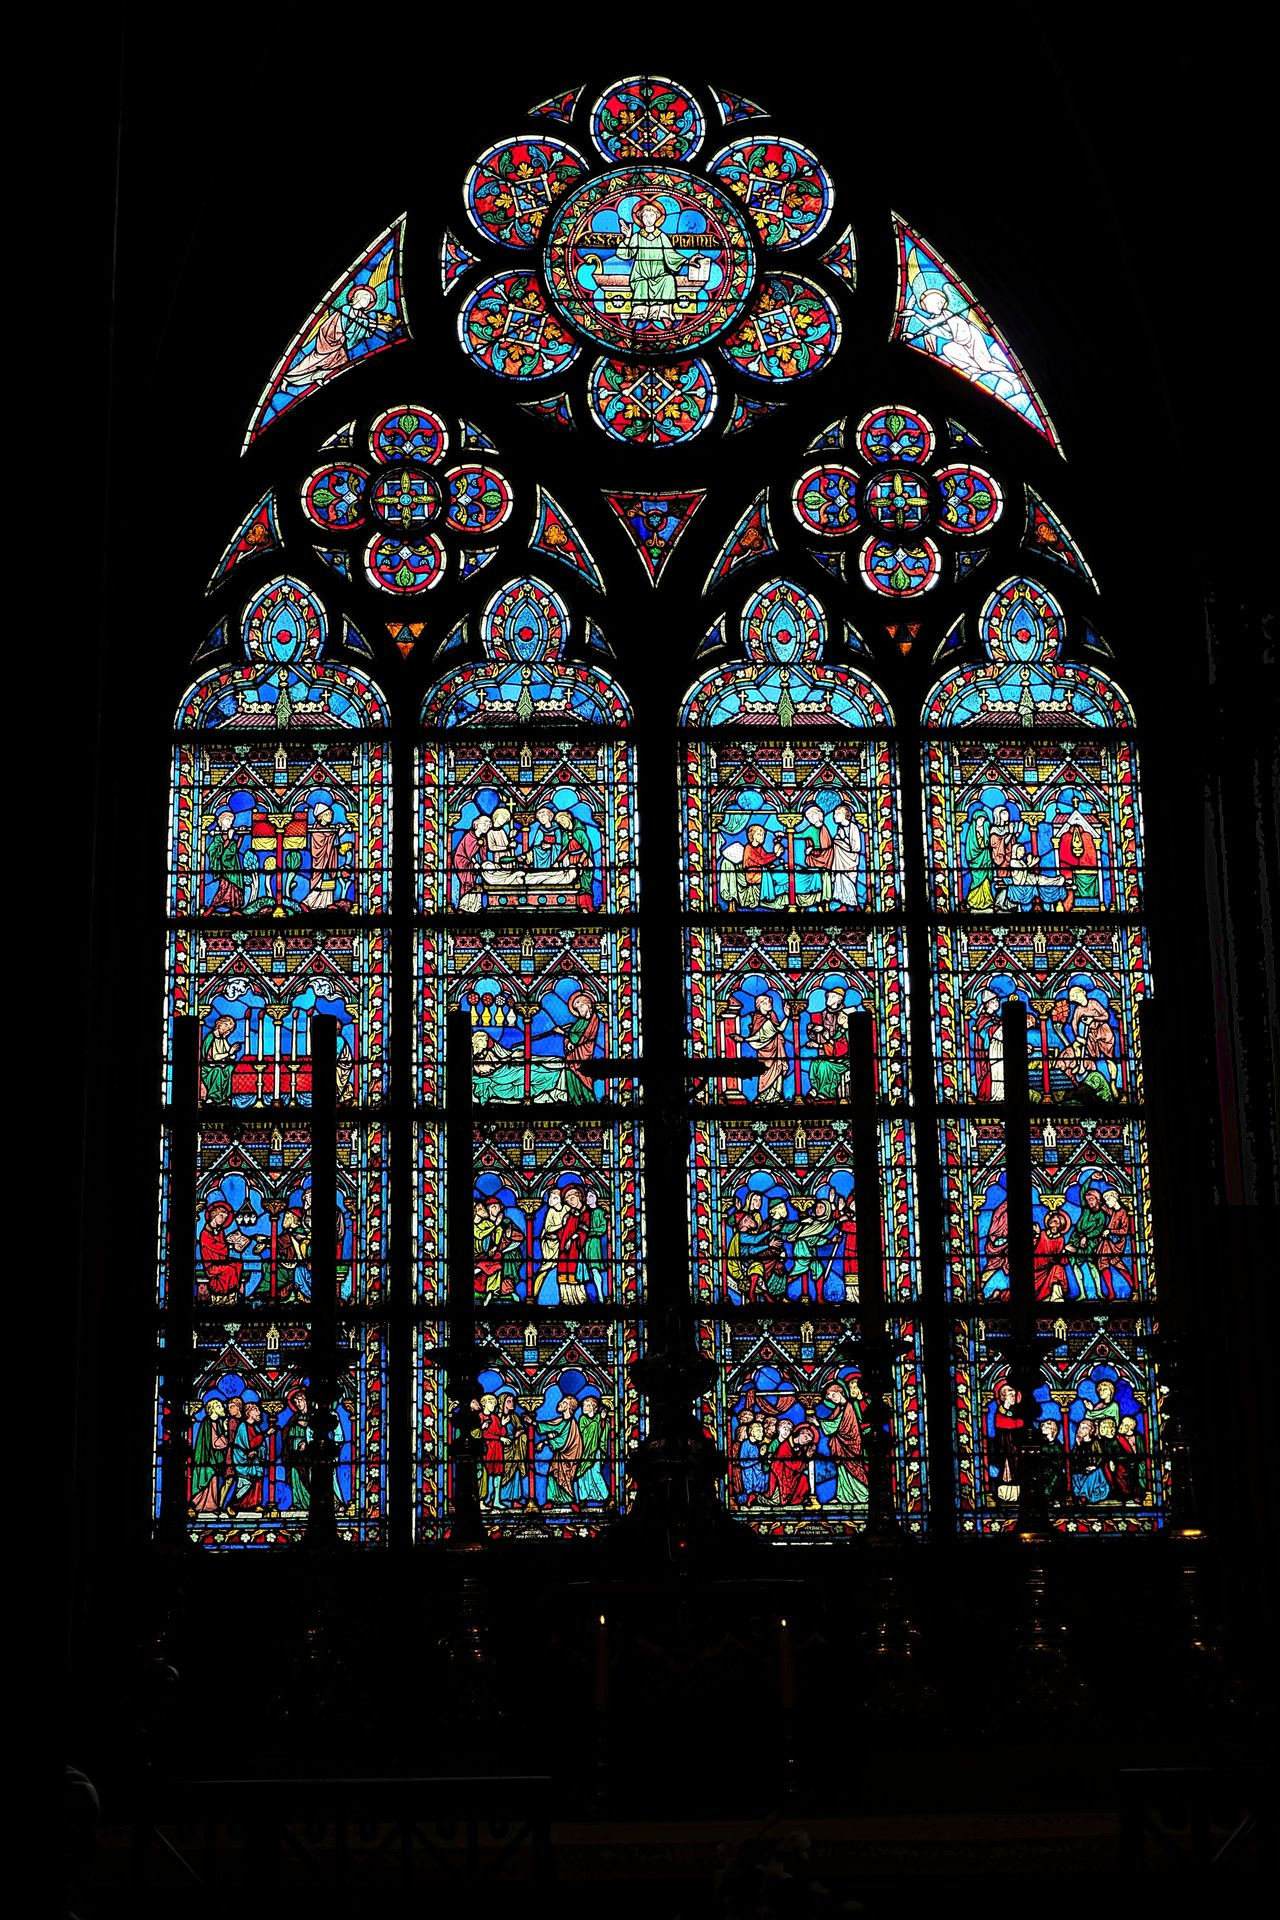 Cathedral Cathedrale Notre Dame Notre Dame Cathedral Notre Dame Cathedral Paris Notre Dame De Paris Notre-Dame Place Of Worship Religion Spirituality Stained Glass Stained Glass Stained Glass Art Stained Glass Window Window